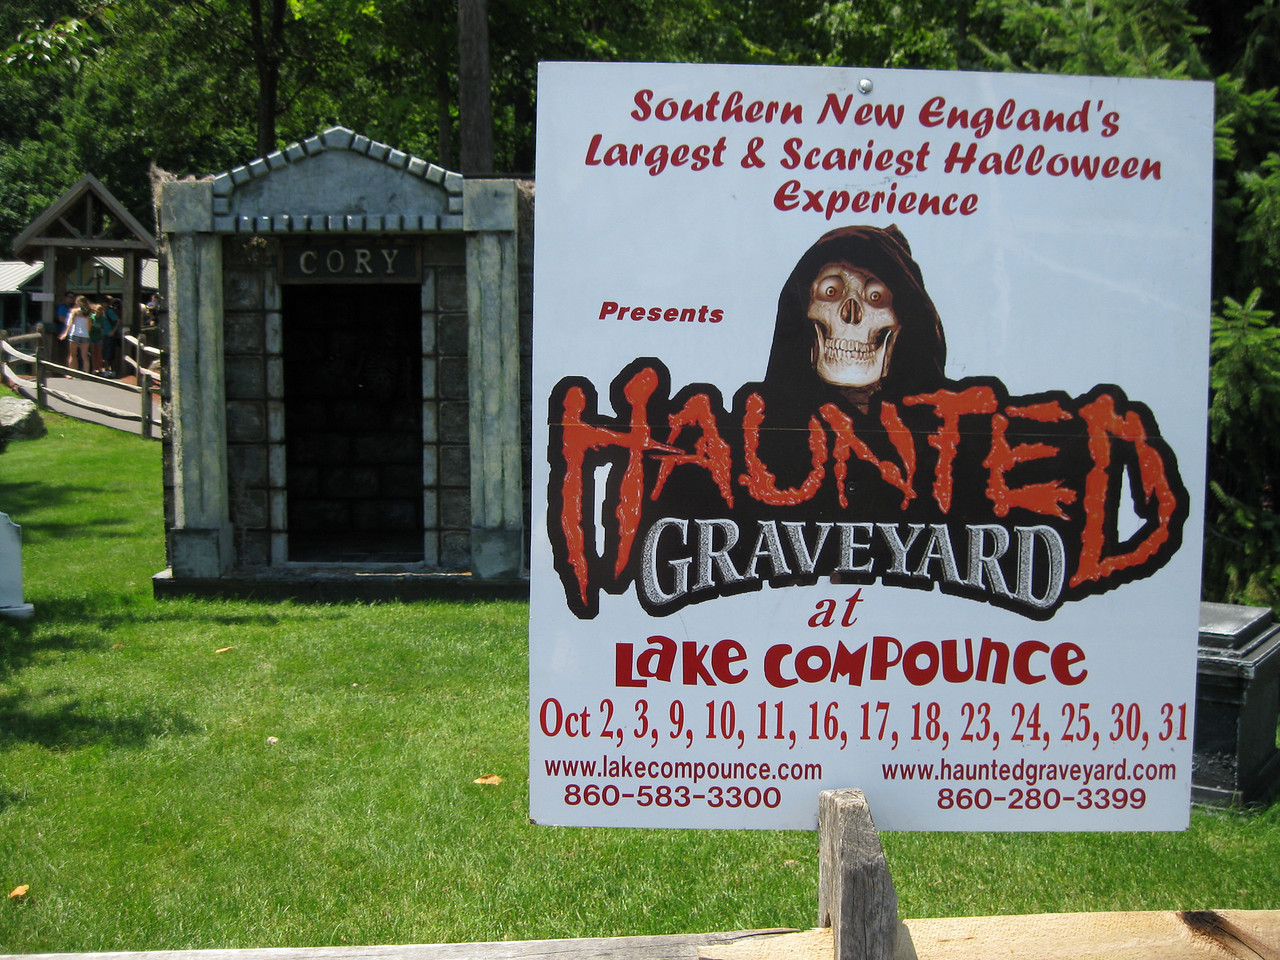 Sign for Haunted Graveyard.